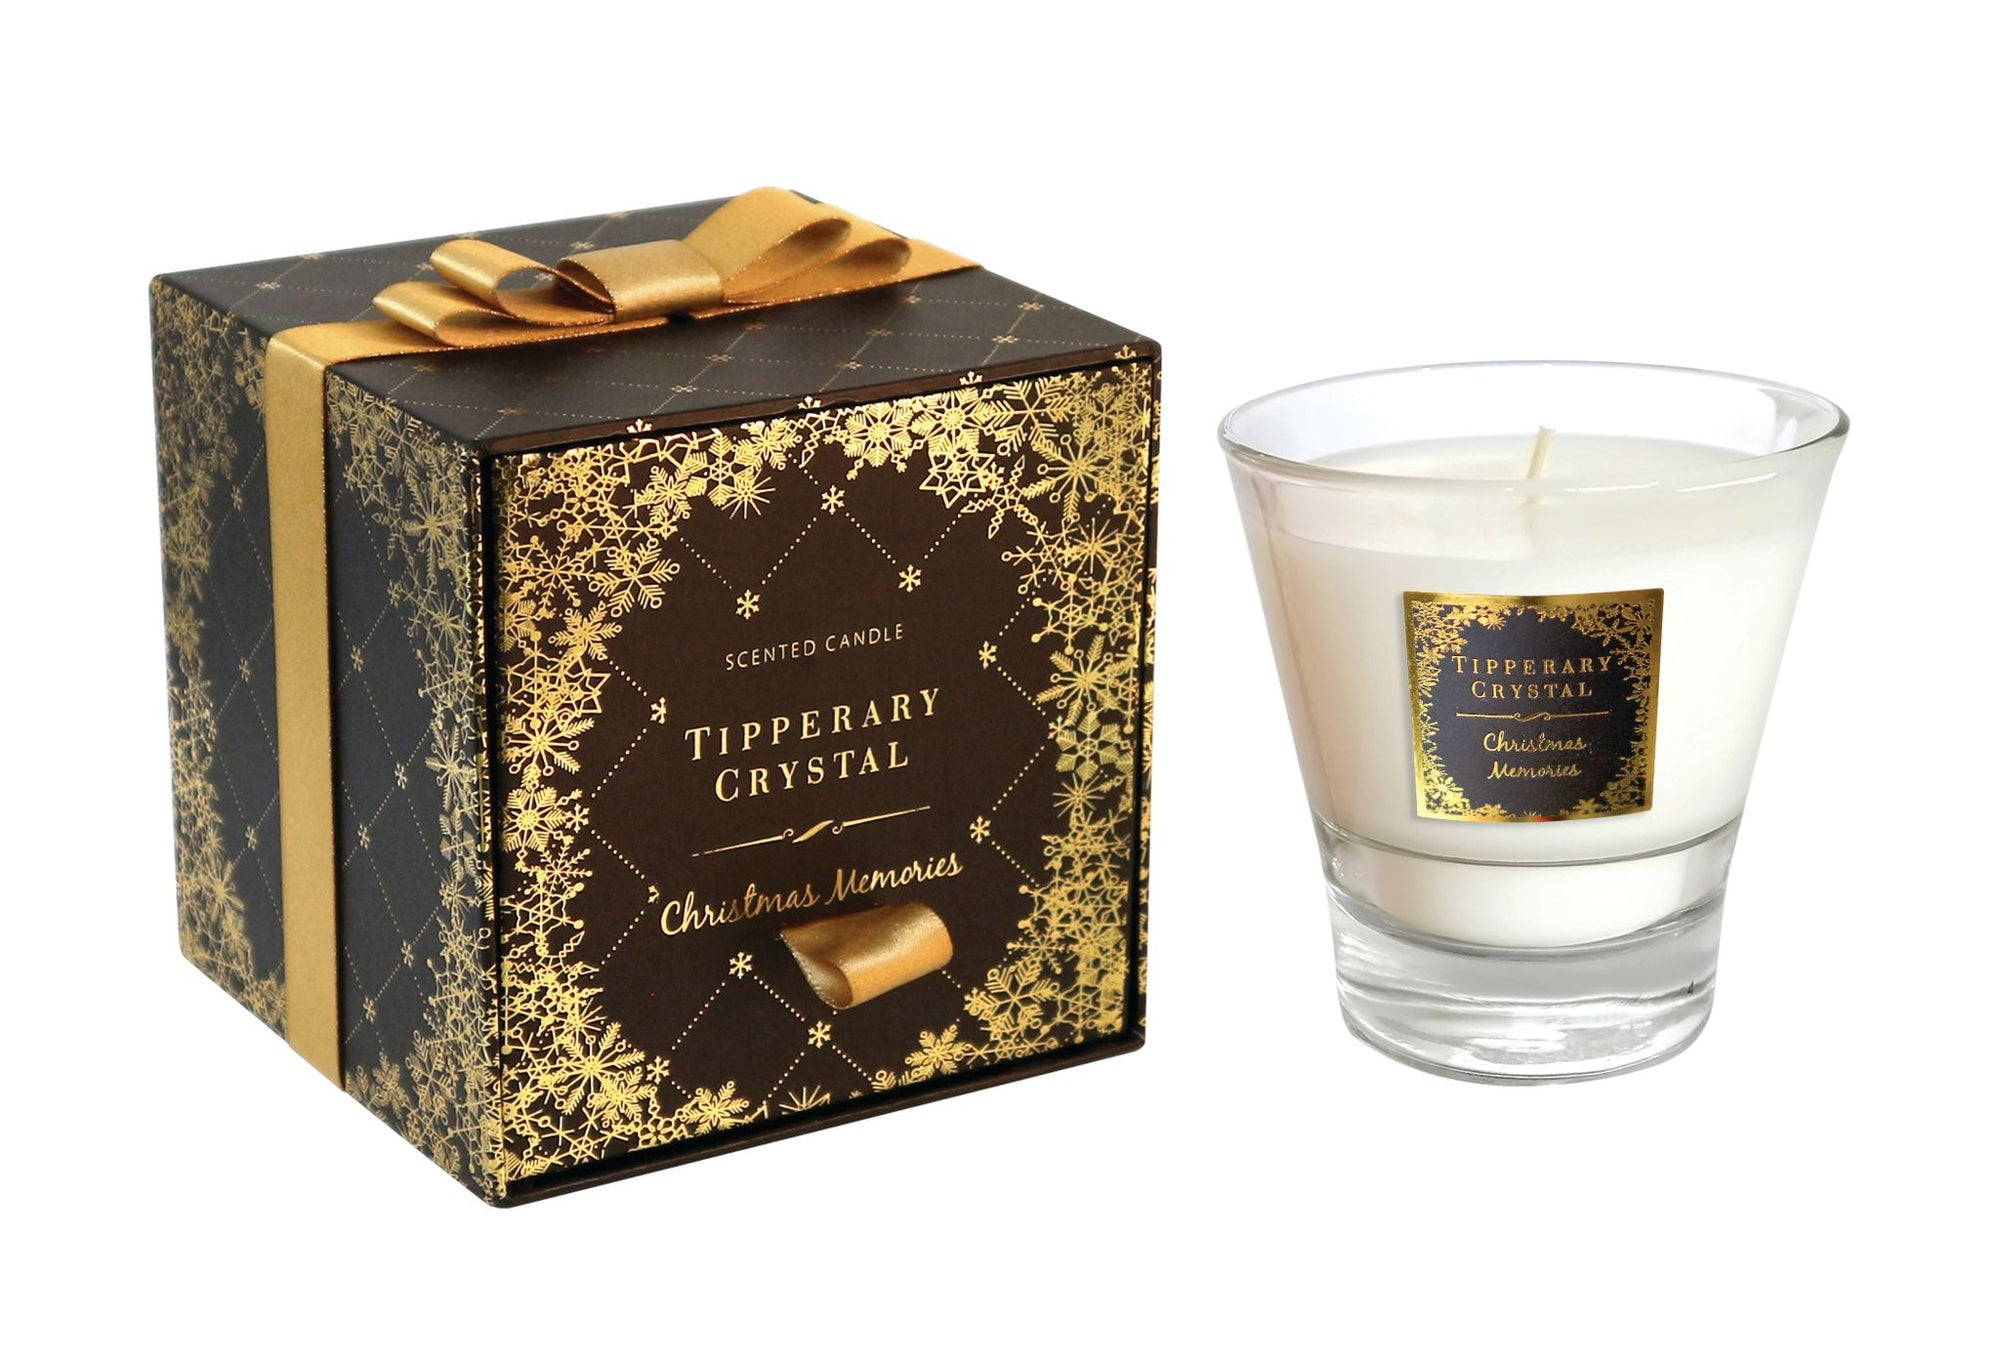 Tipperary Crystal Christmas Memories Candle 300g